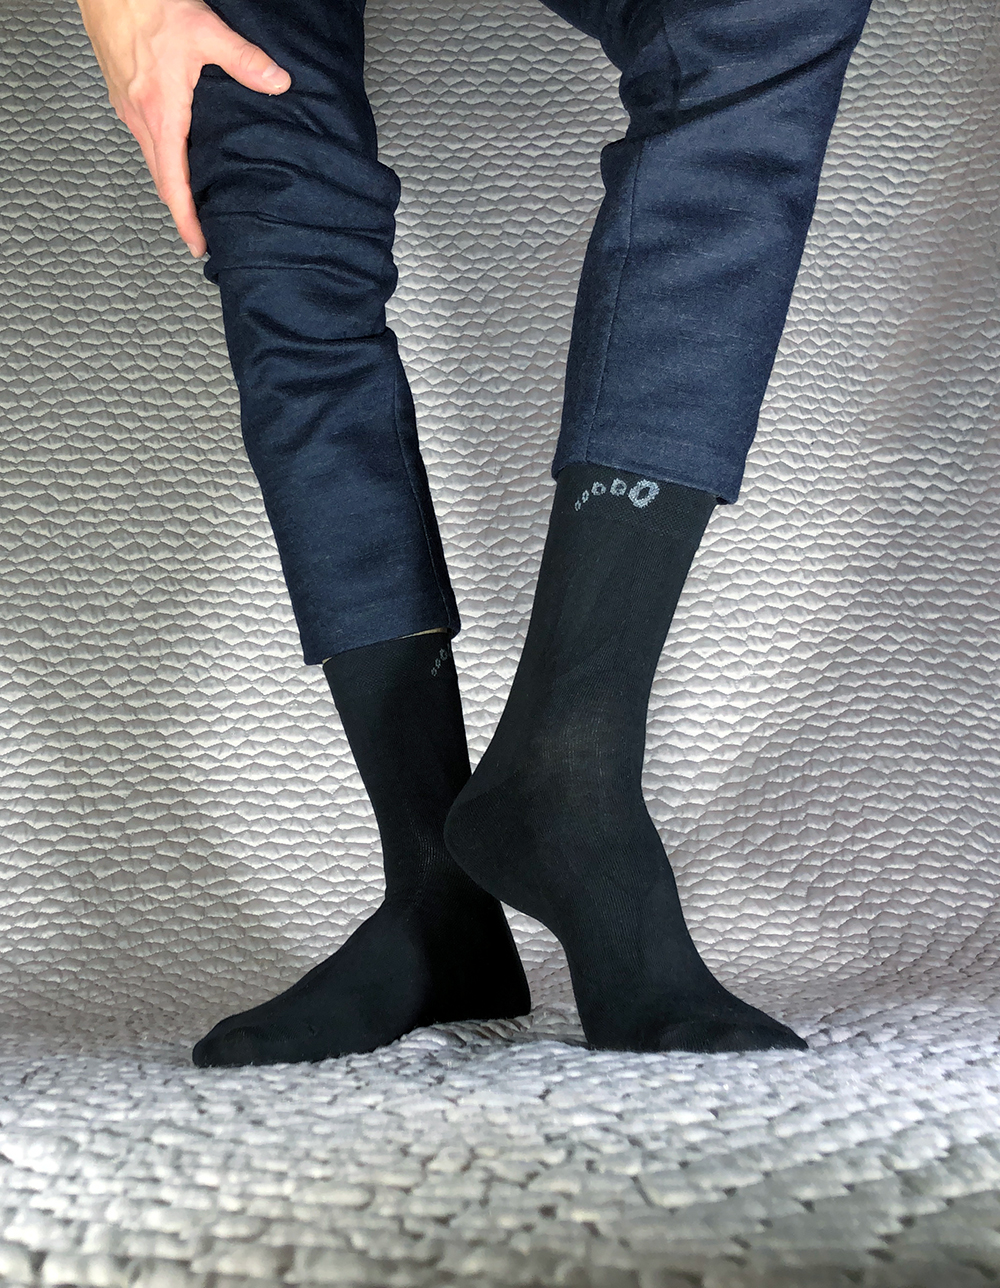 blacksocks.jpg